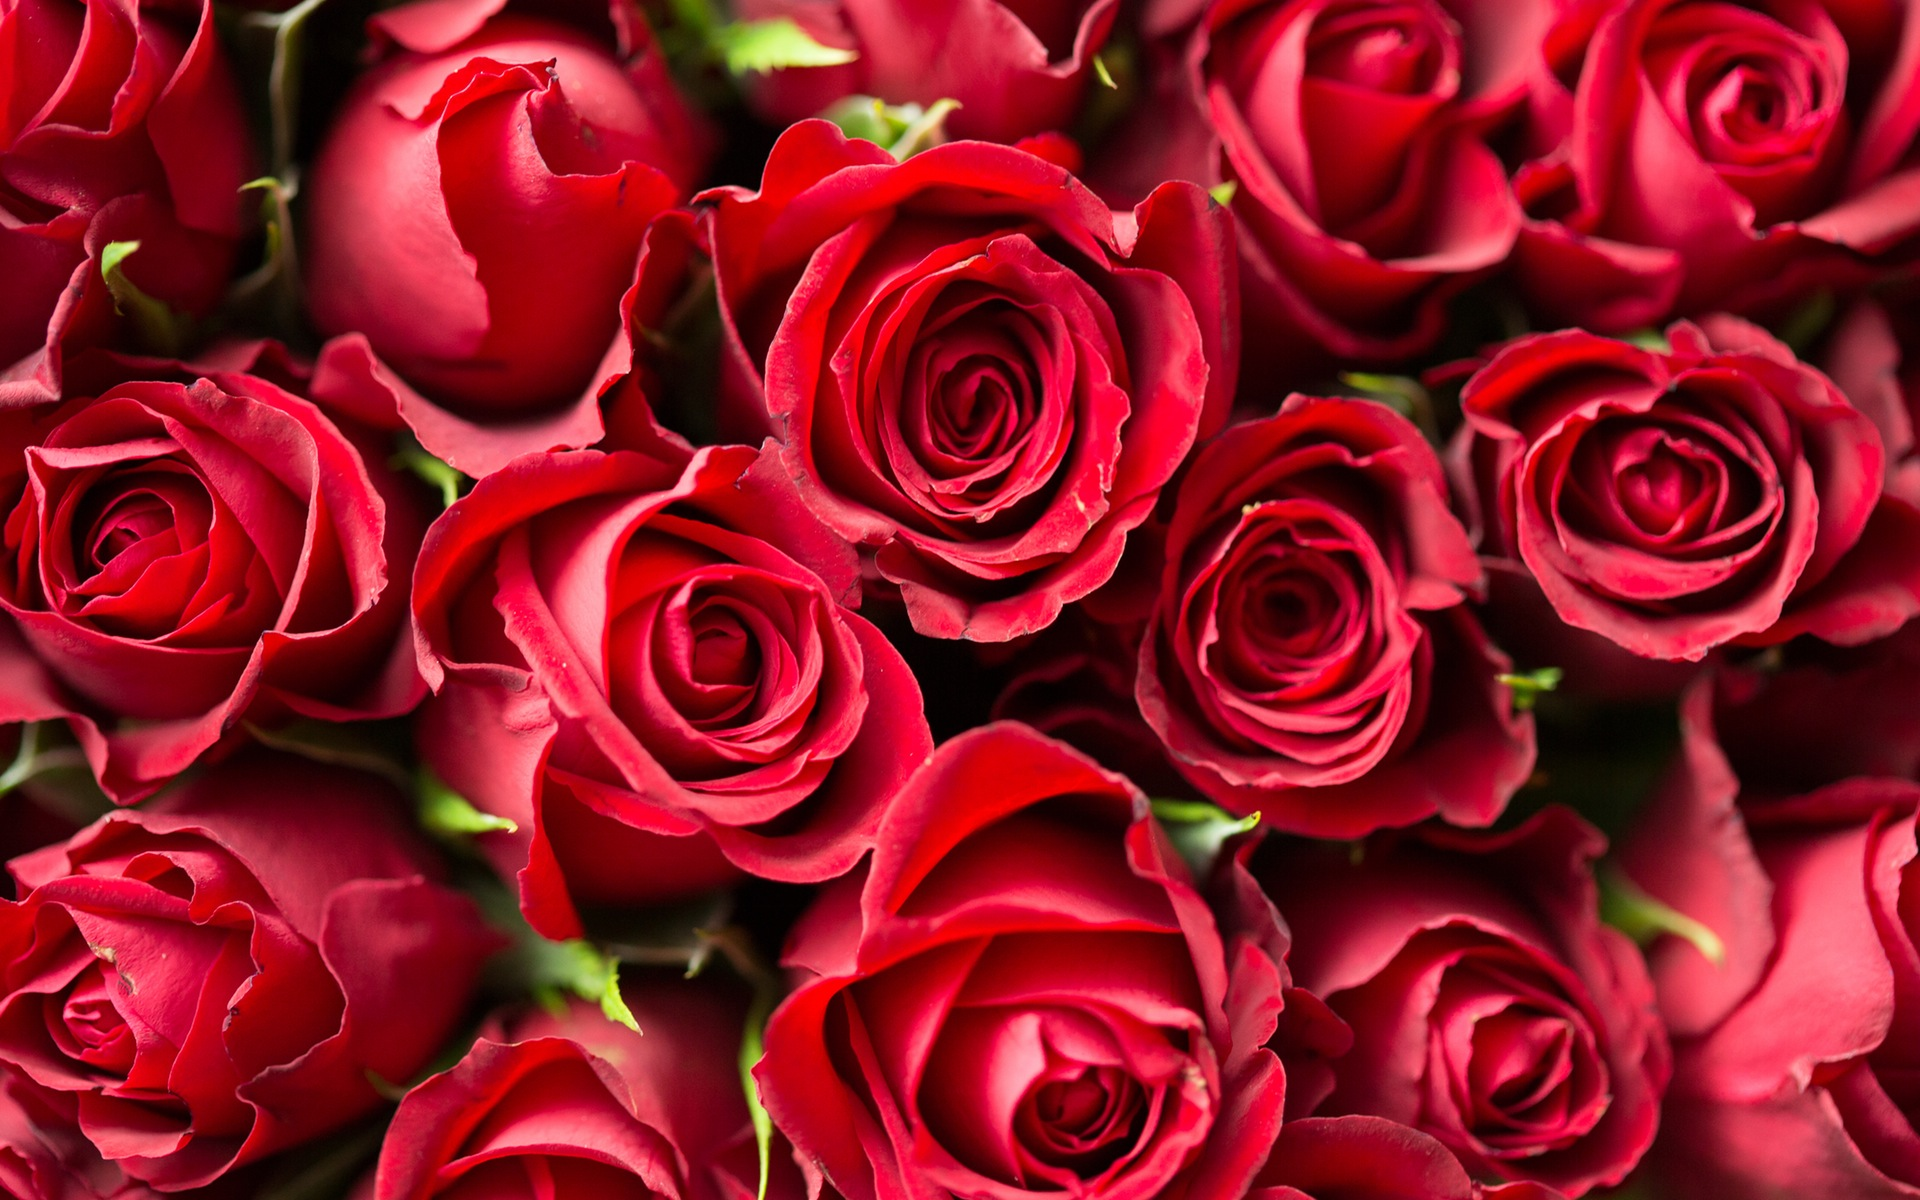 red roses close up wallpaper background